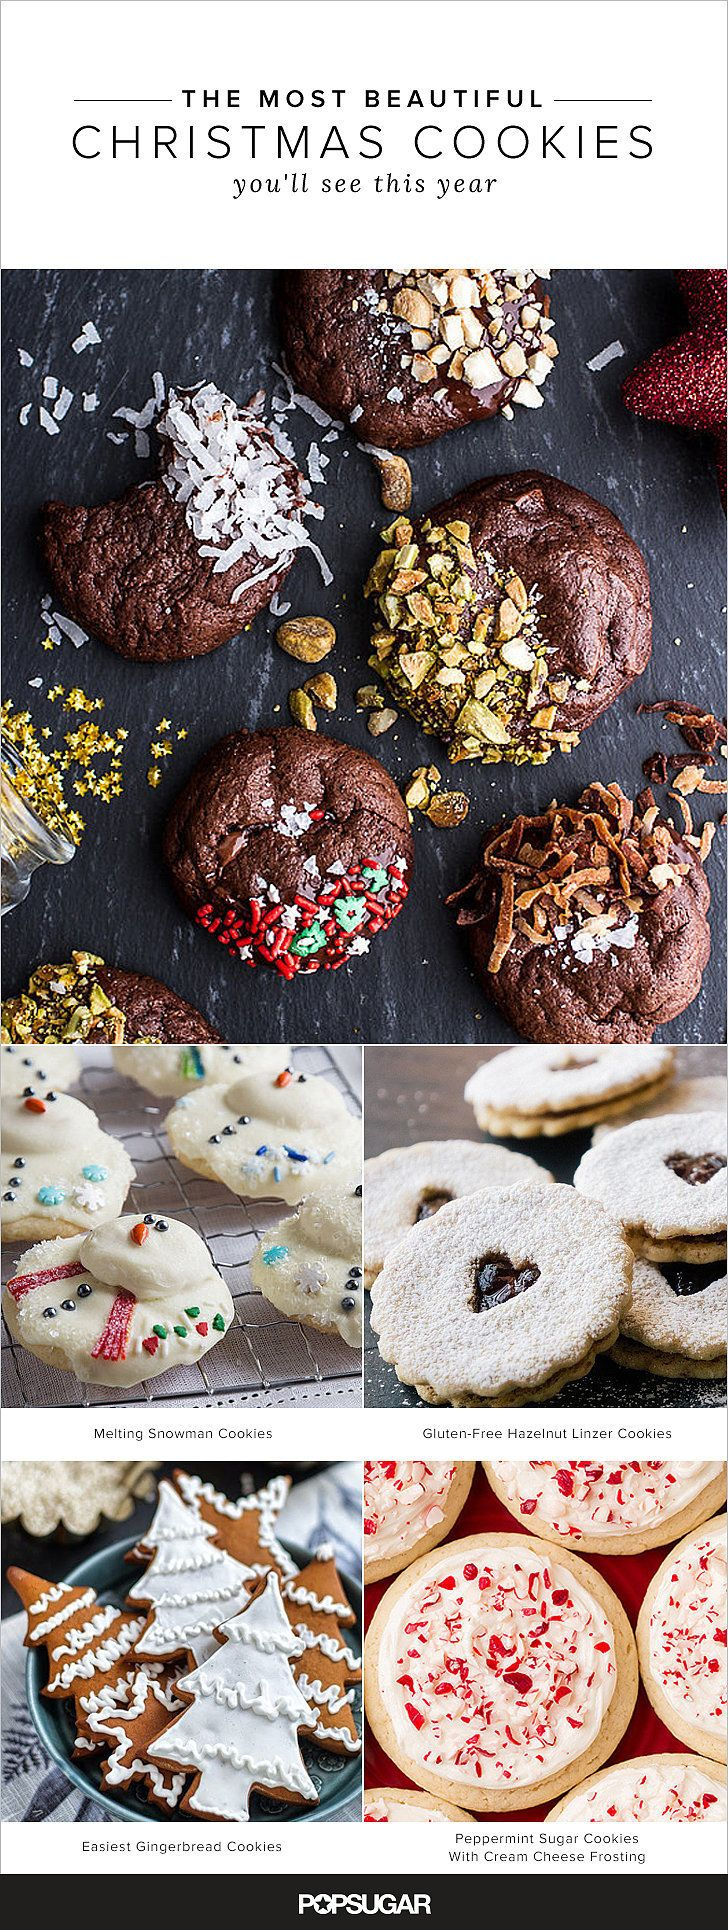 The 50 Most Beautiful Christmas Cookies You'll See This Year